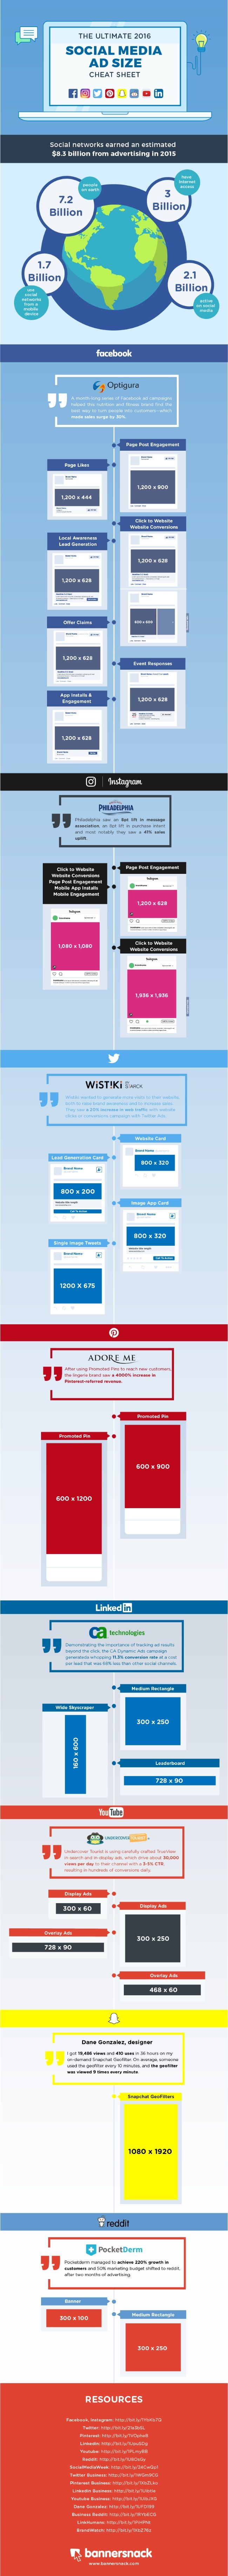 The Latest Ad Specifications for Social Networks (Infographic)